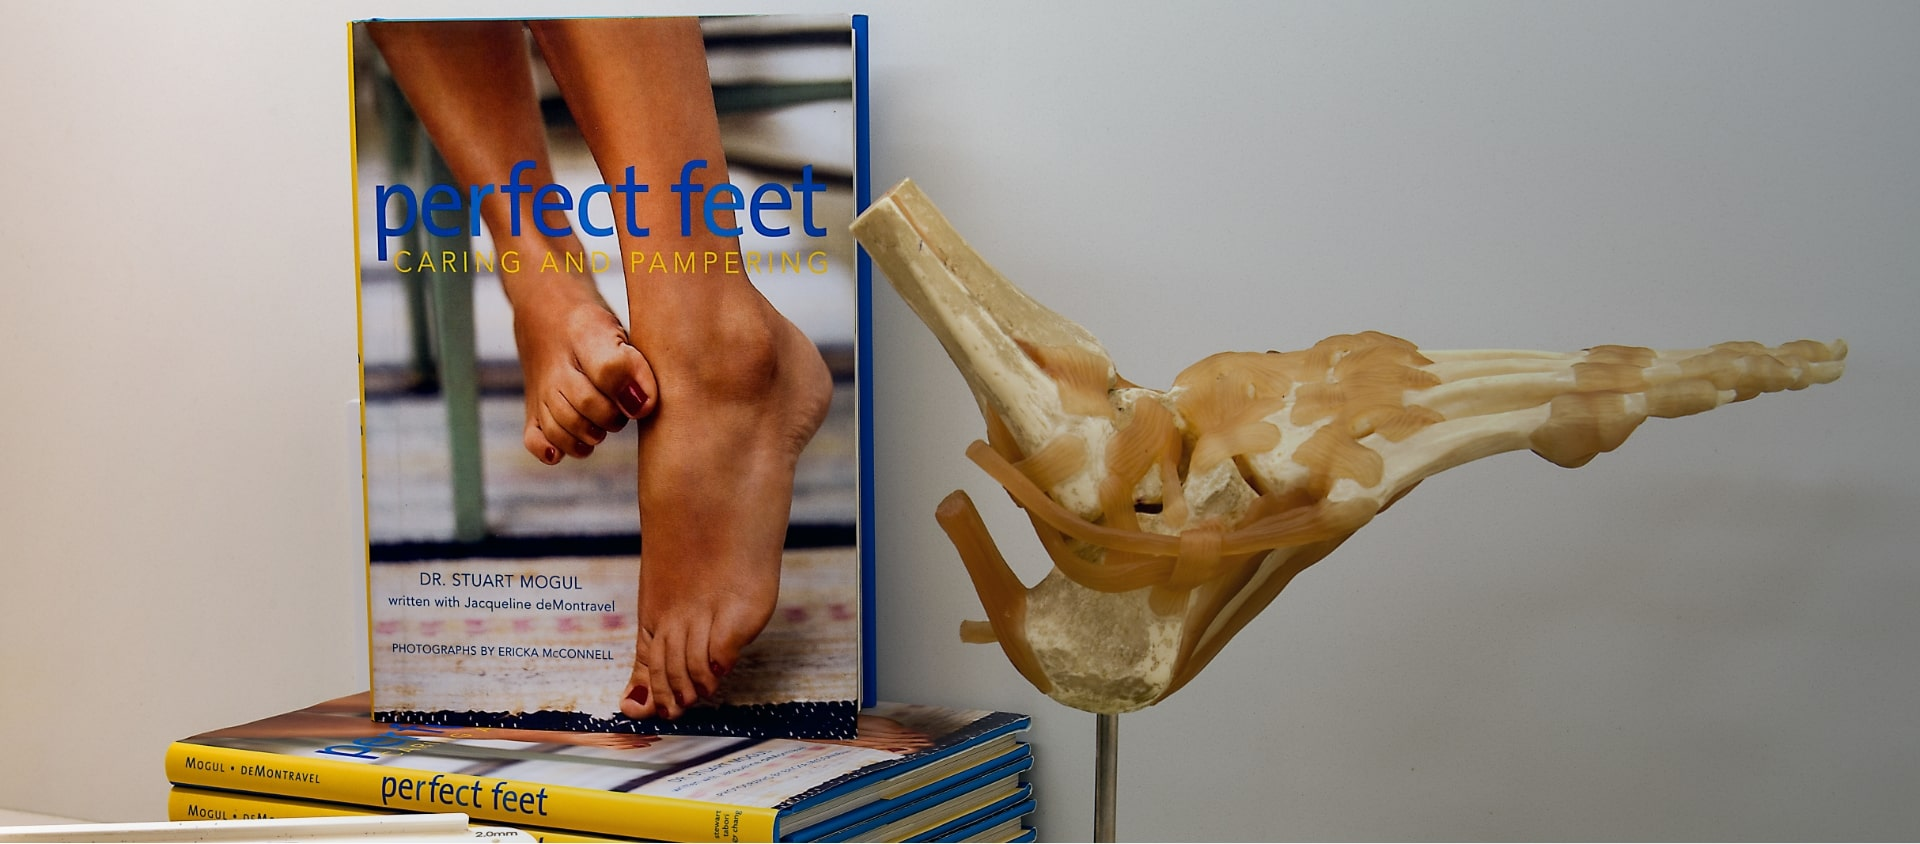 Dr, Mogul's Book titled perfect feet caring and pampering